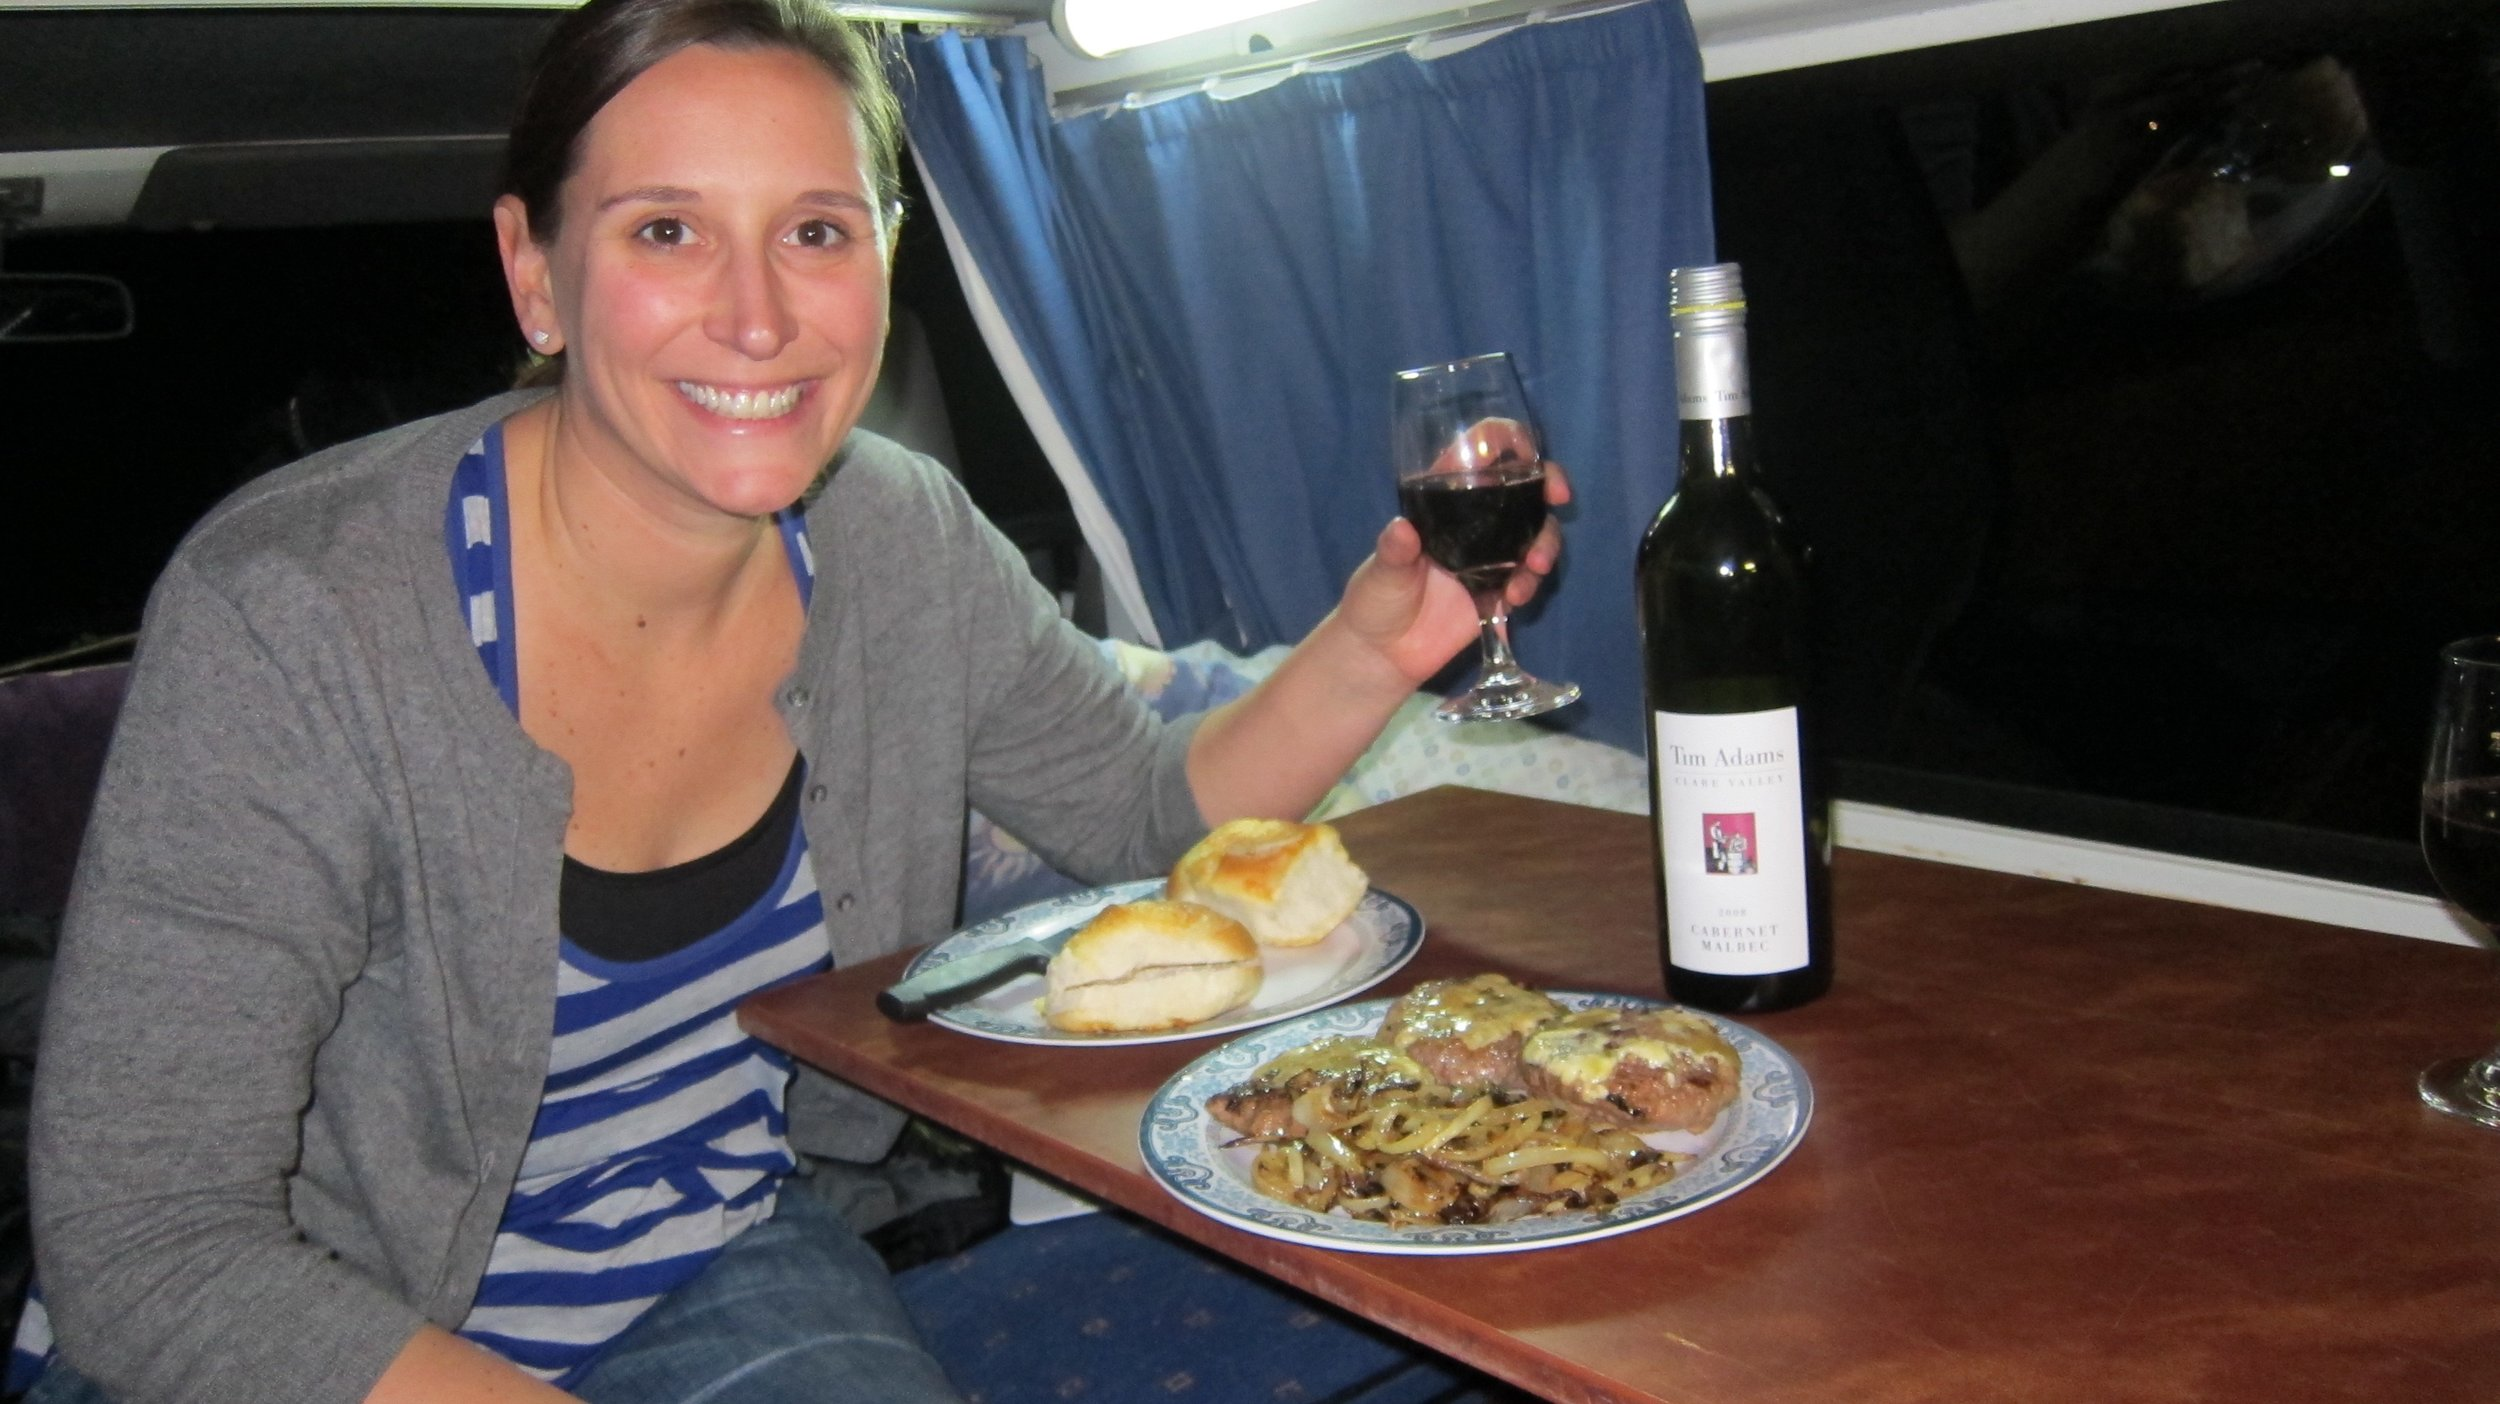 Most of our dining experiences were in the campervan. But, we always drank good wine.